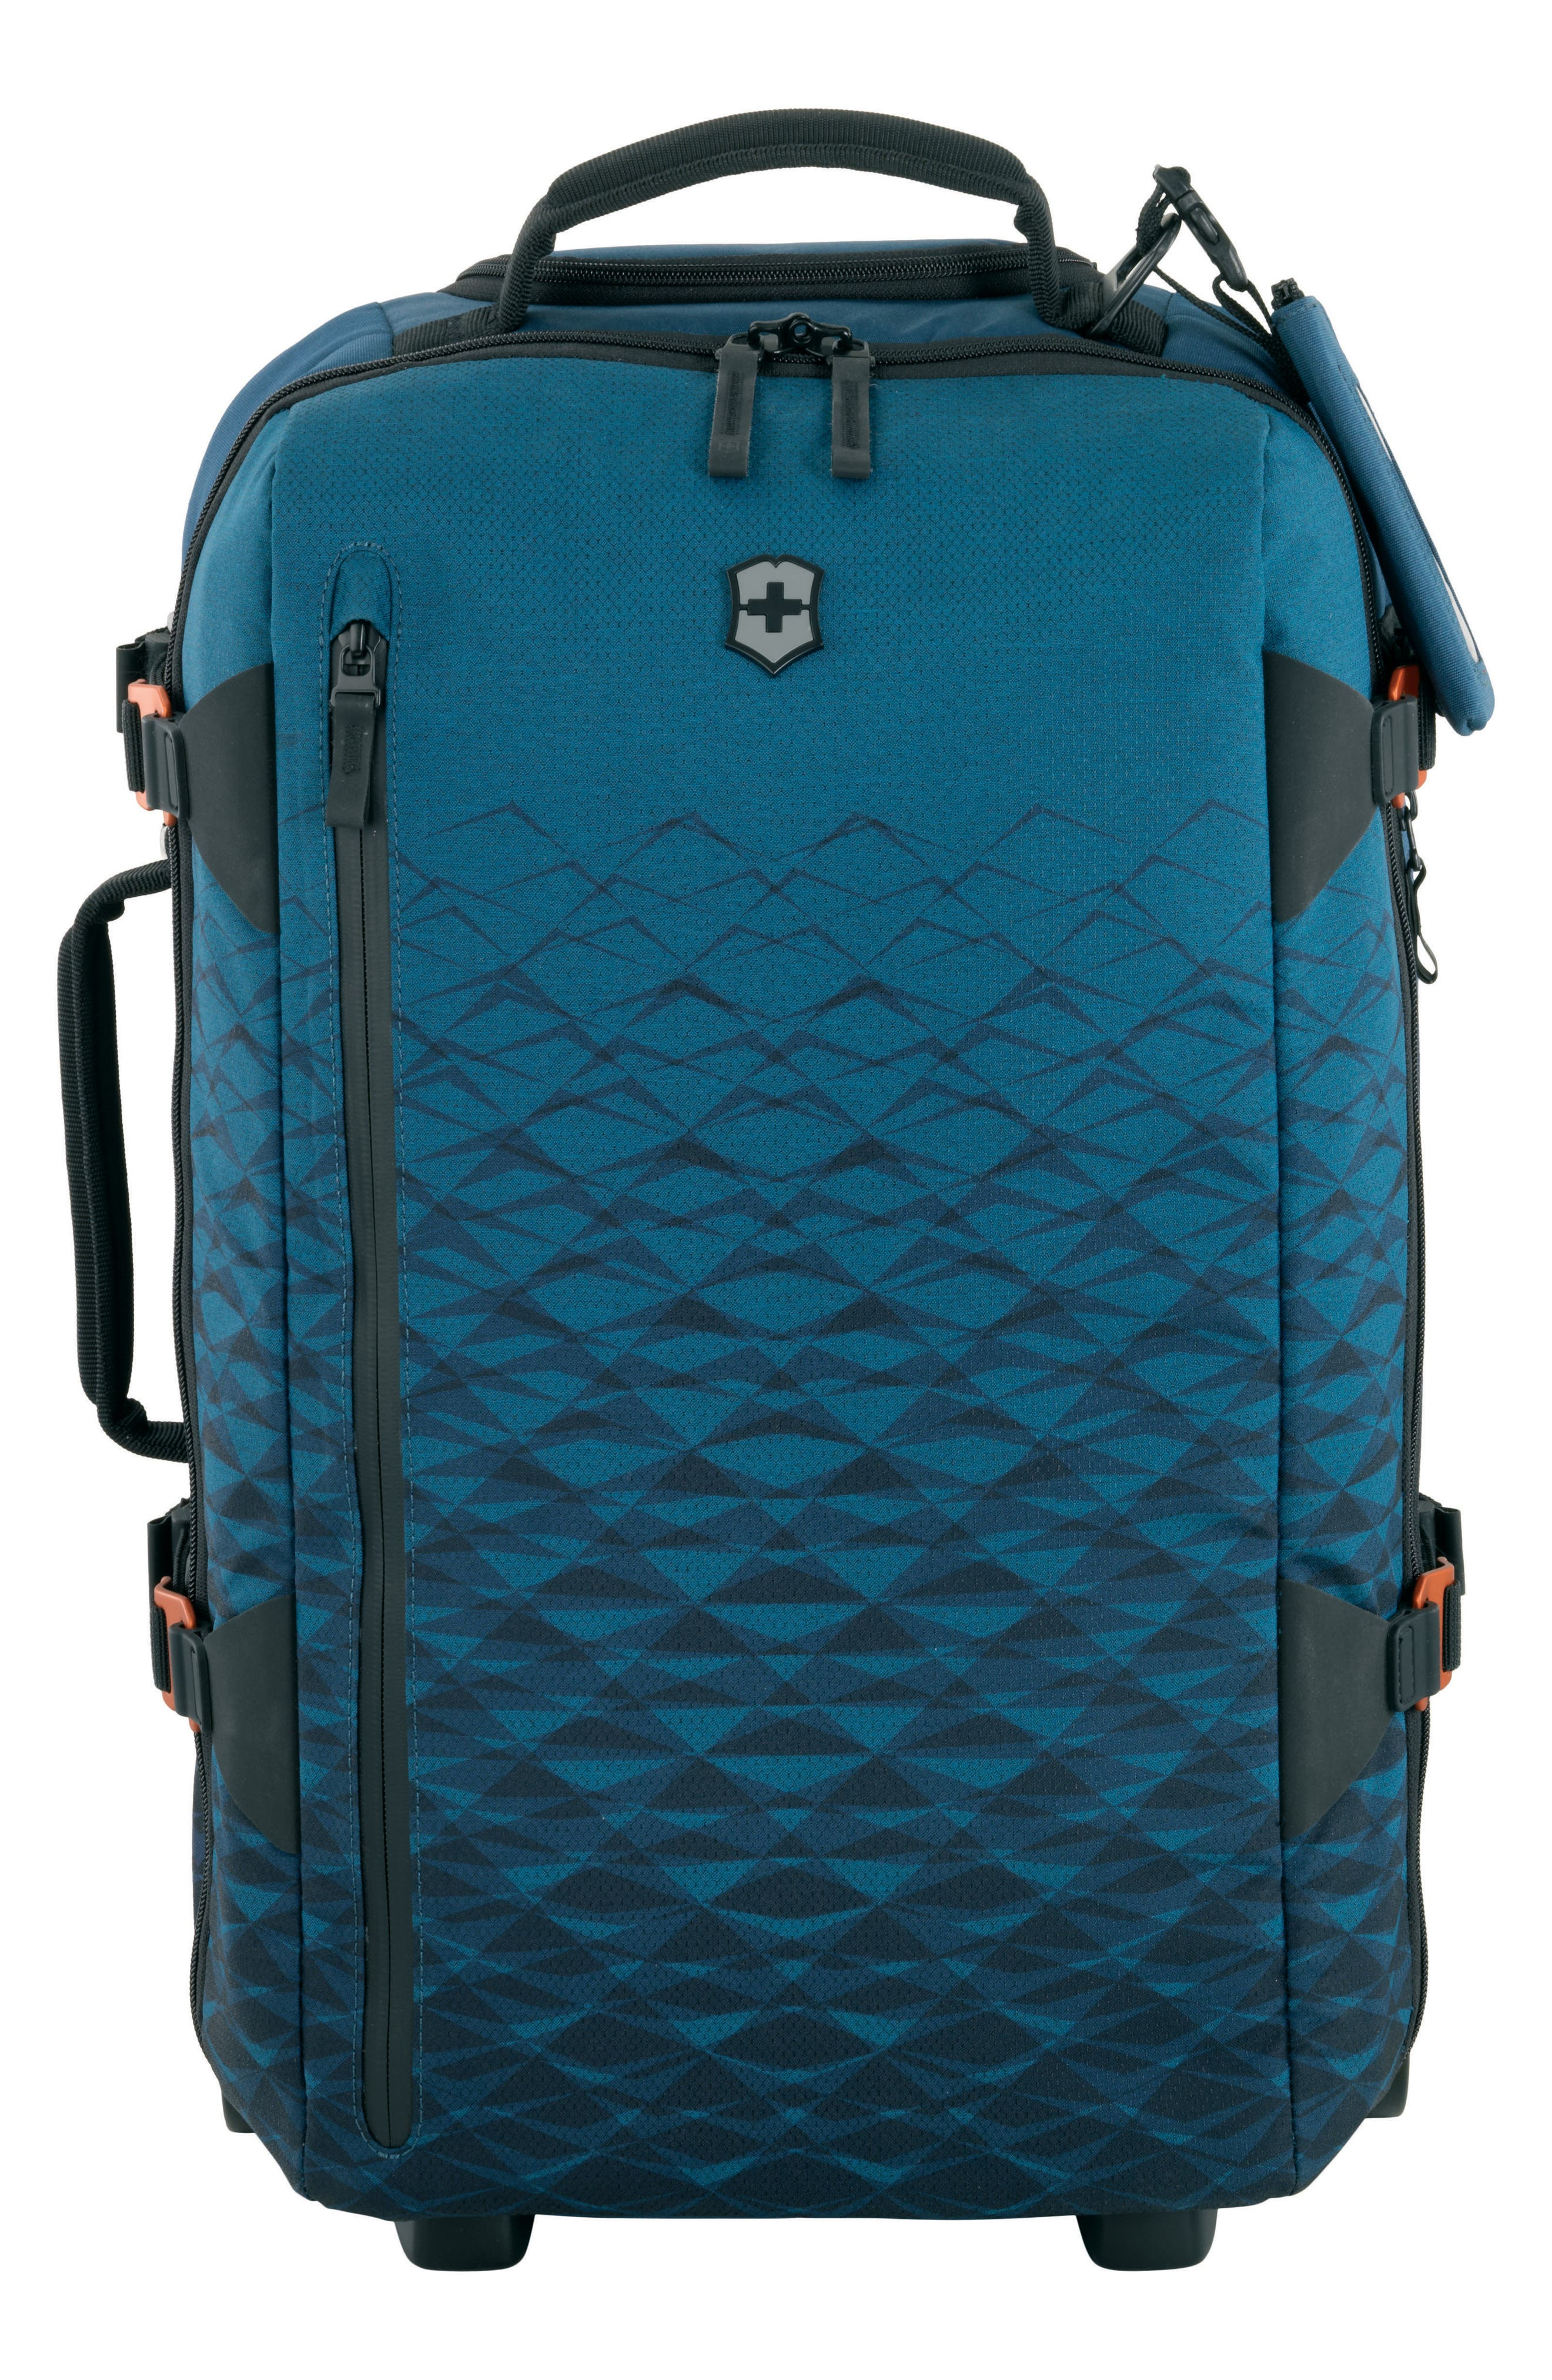 VX Touring 21-Inch Carry-On,                         Main,                         color, Dark Teal